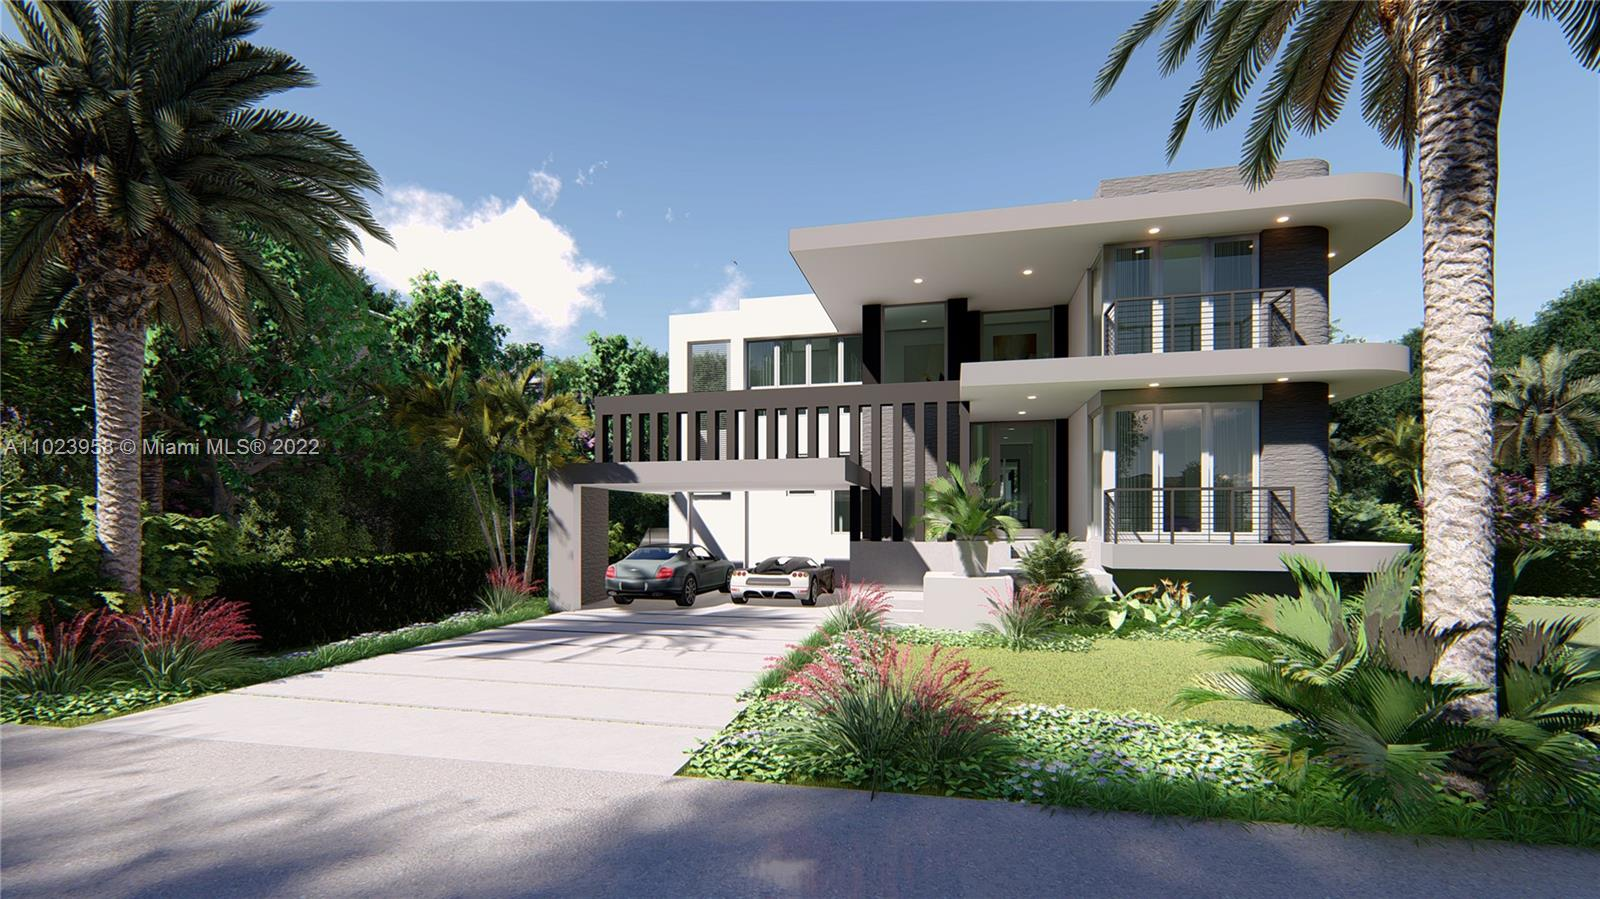 Select finishes and colors with the Developer. Enjoy Island living with a brand new, single family home scheduled for completion in the Summer of 2022. Beautiful finishes will leave you breathless for this contemporary, spacious 5 bd/5ba/2 half bath home located on an oversized corner lot, steps from Key Biscayne's top schools, parks, and commercial centers. This 4,050 SF (under A/C) home sits on a quiet, residential street with easy access to Harbor Drive. The open floor plan defines luxurious Key living at its best, with a modern Italian kitchen including top of the line appliances, swimming pool with patio, covered terrace with outdoor summer kitchen, impact windows/doors, and large carport. Built by P.K. Contractors Group, LLC.